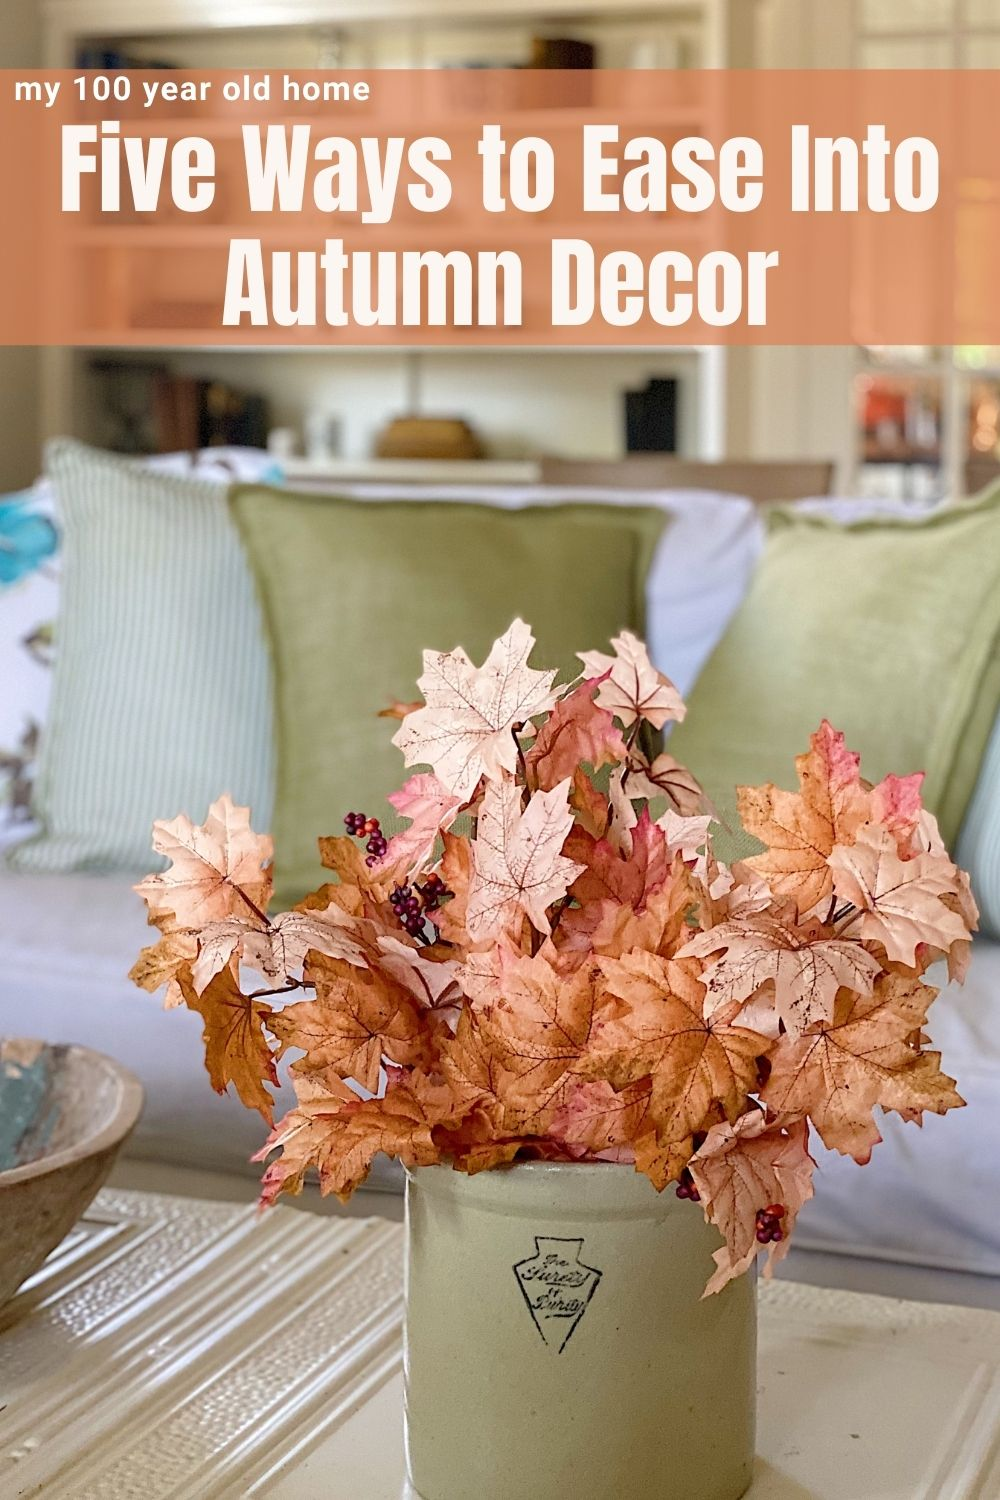 Labor Day is here and it is beginning to feel more like fall. Today I am sharing five ways to ease into Autumn decor.